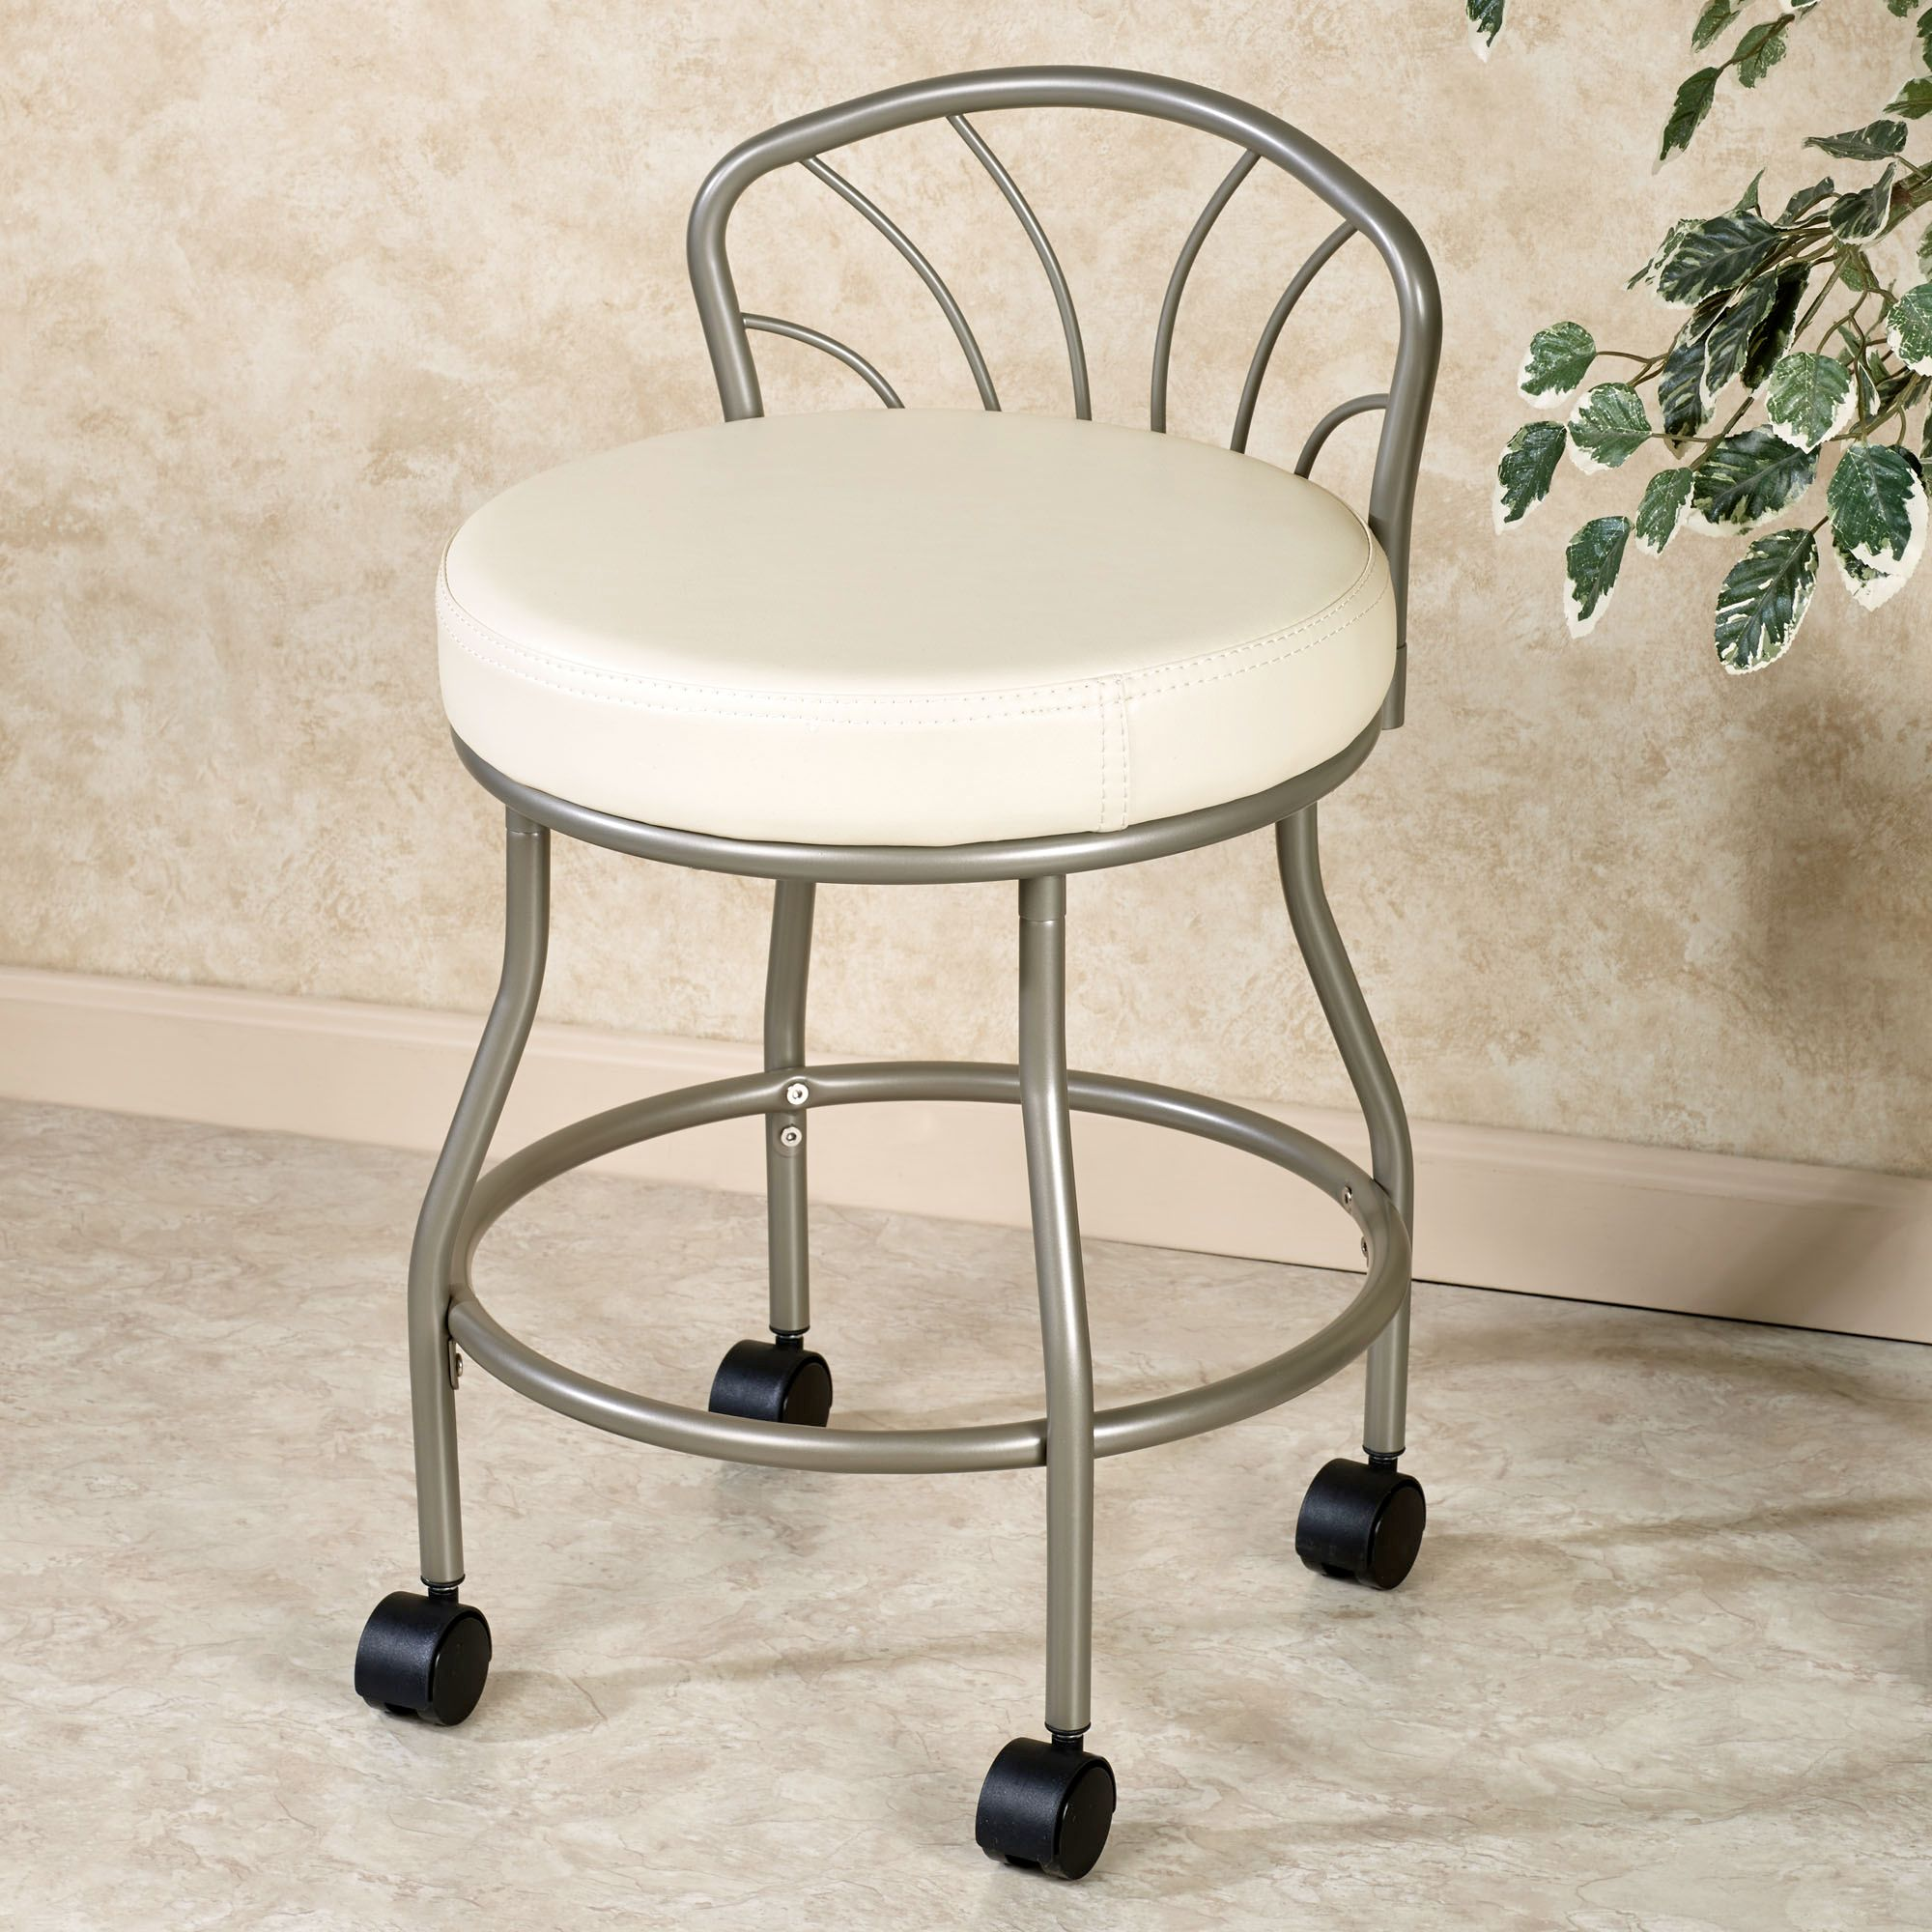 Bathroom vanity stools